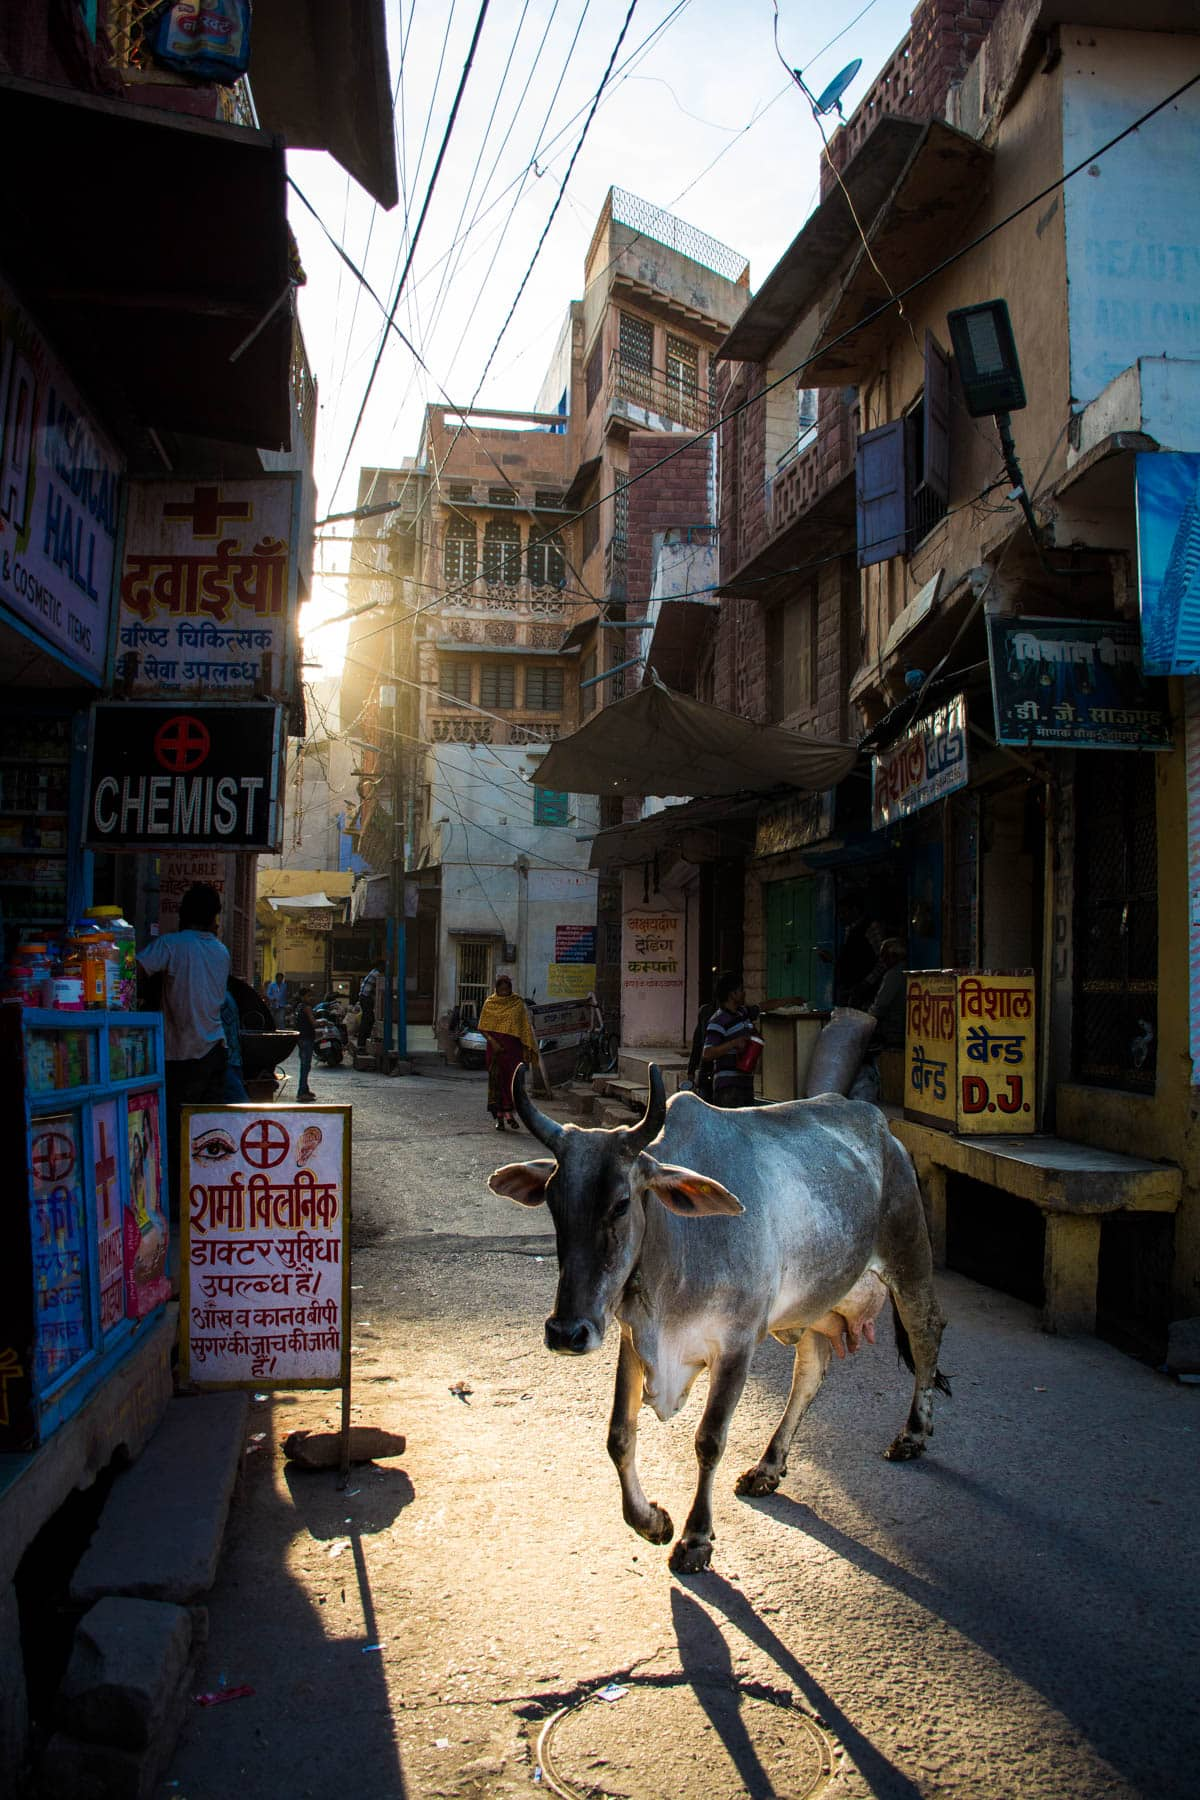 Cow walking across the street at sunset in Jodhpur, India